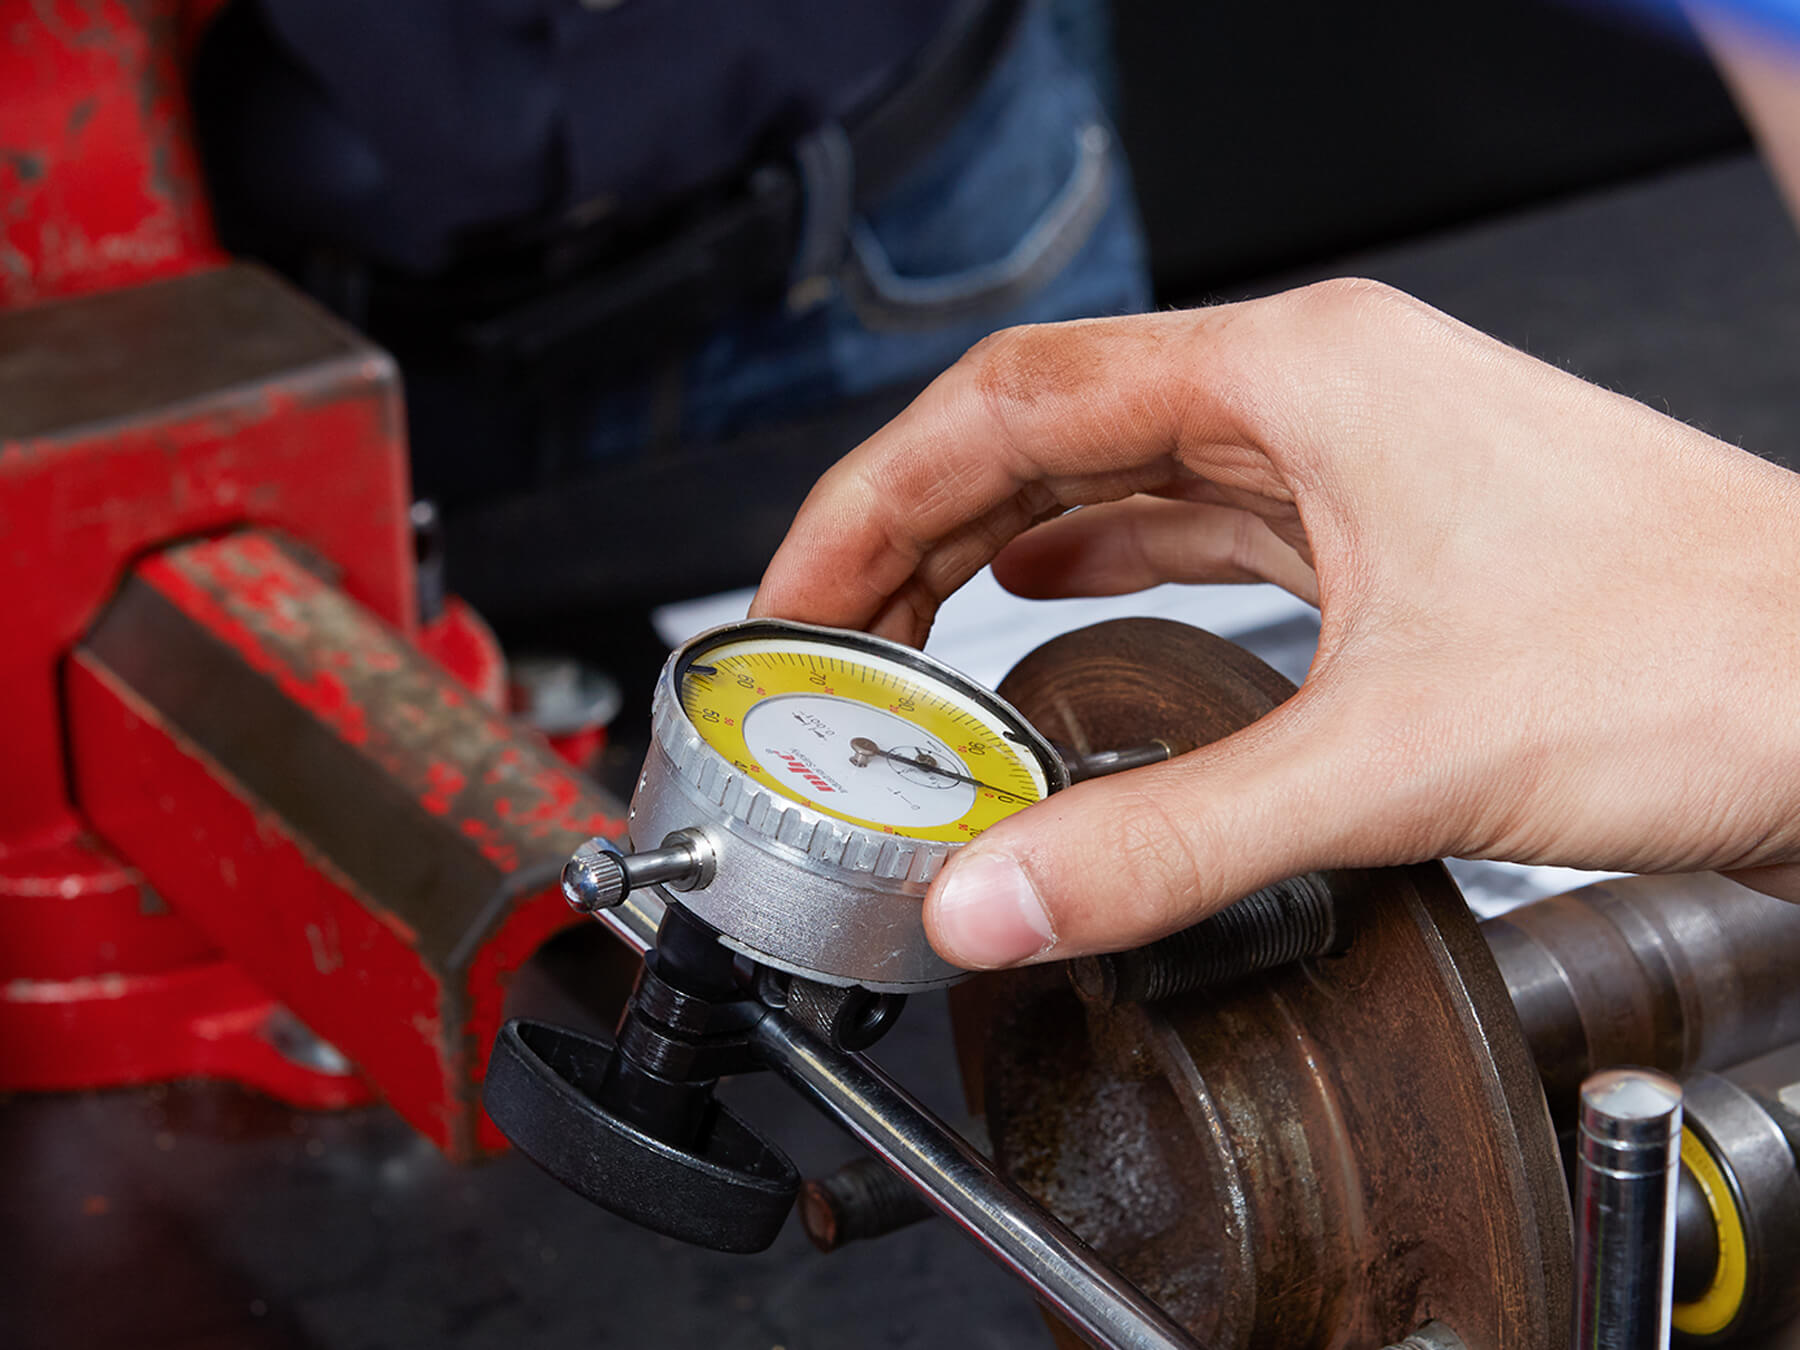 close-up on student hands working with a pressure gauge at the Dallas campus